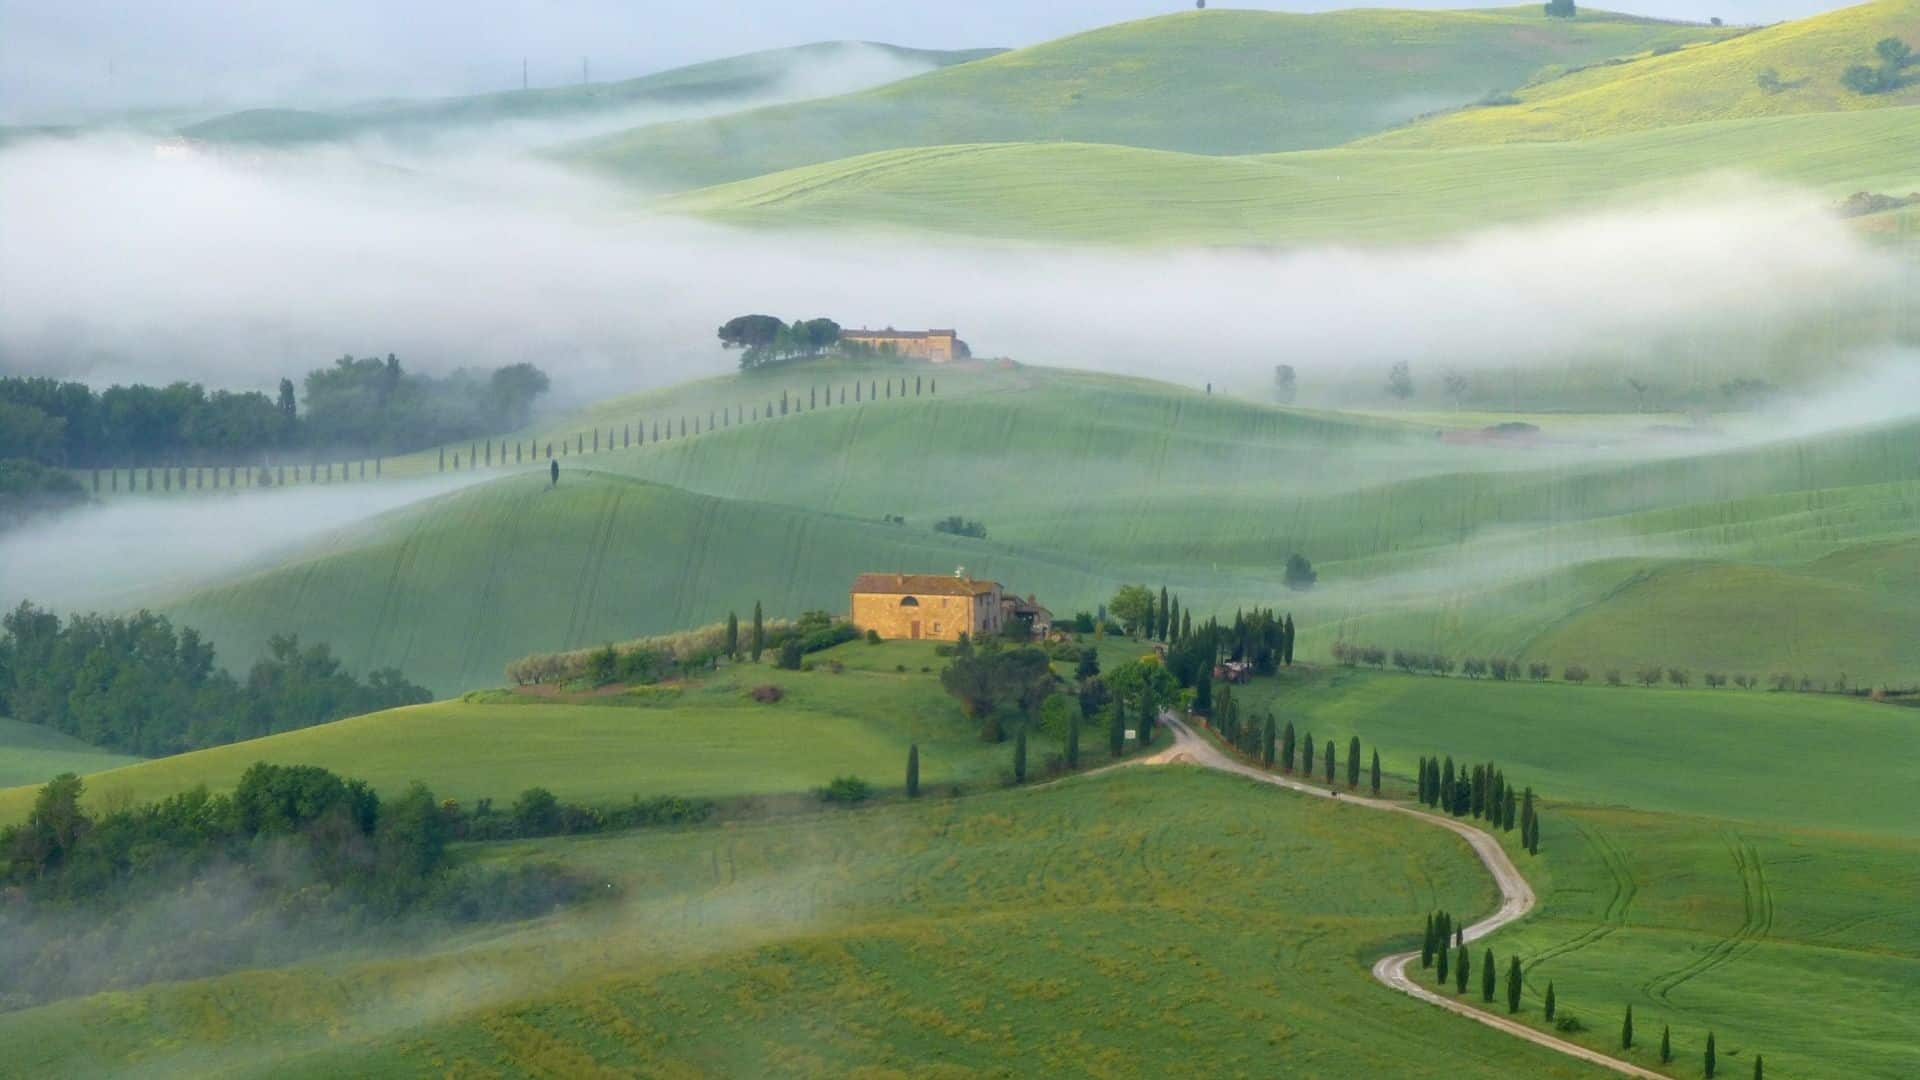 Cosa vedere in Val d'Orcia?